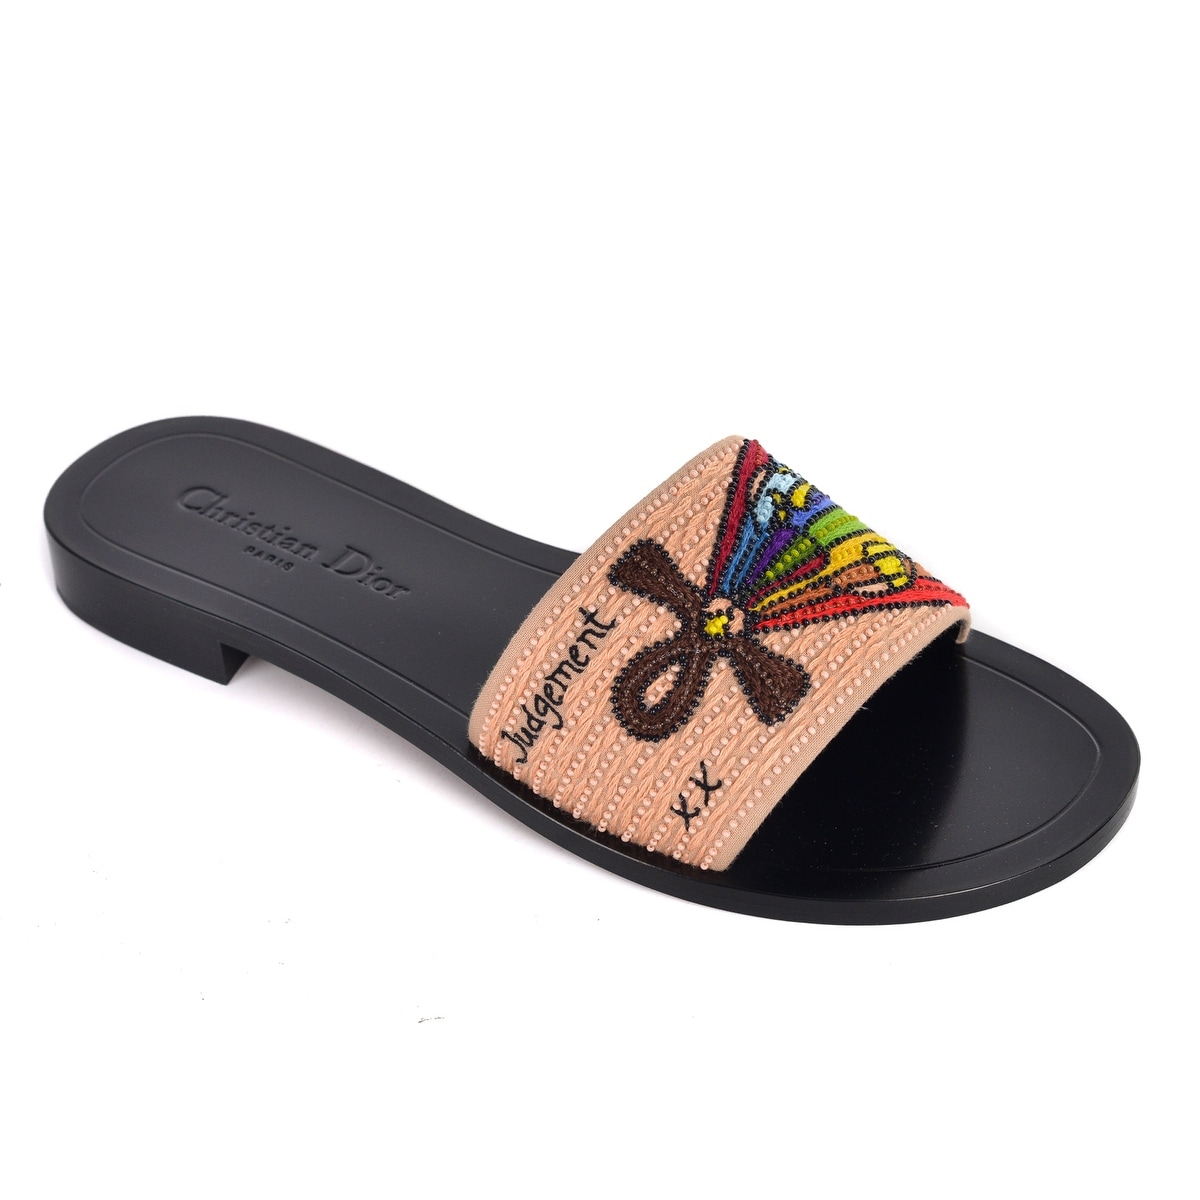 048c8c9c3539 Shop Dior Womens Black Dior Tarot Judgement Embroidered Slippers - Free  Shipping Today - Overstock - 26289979